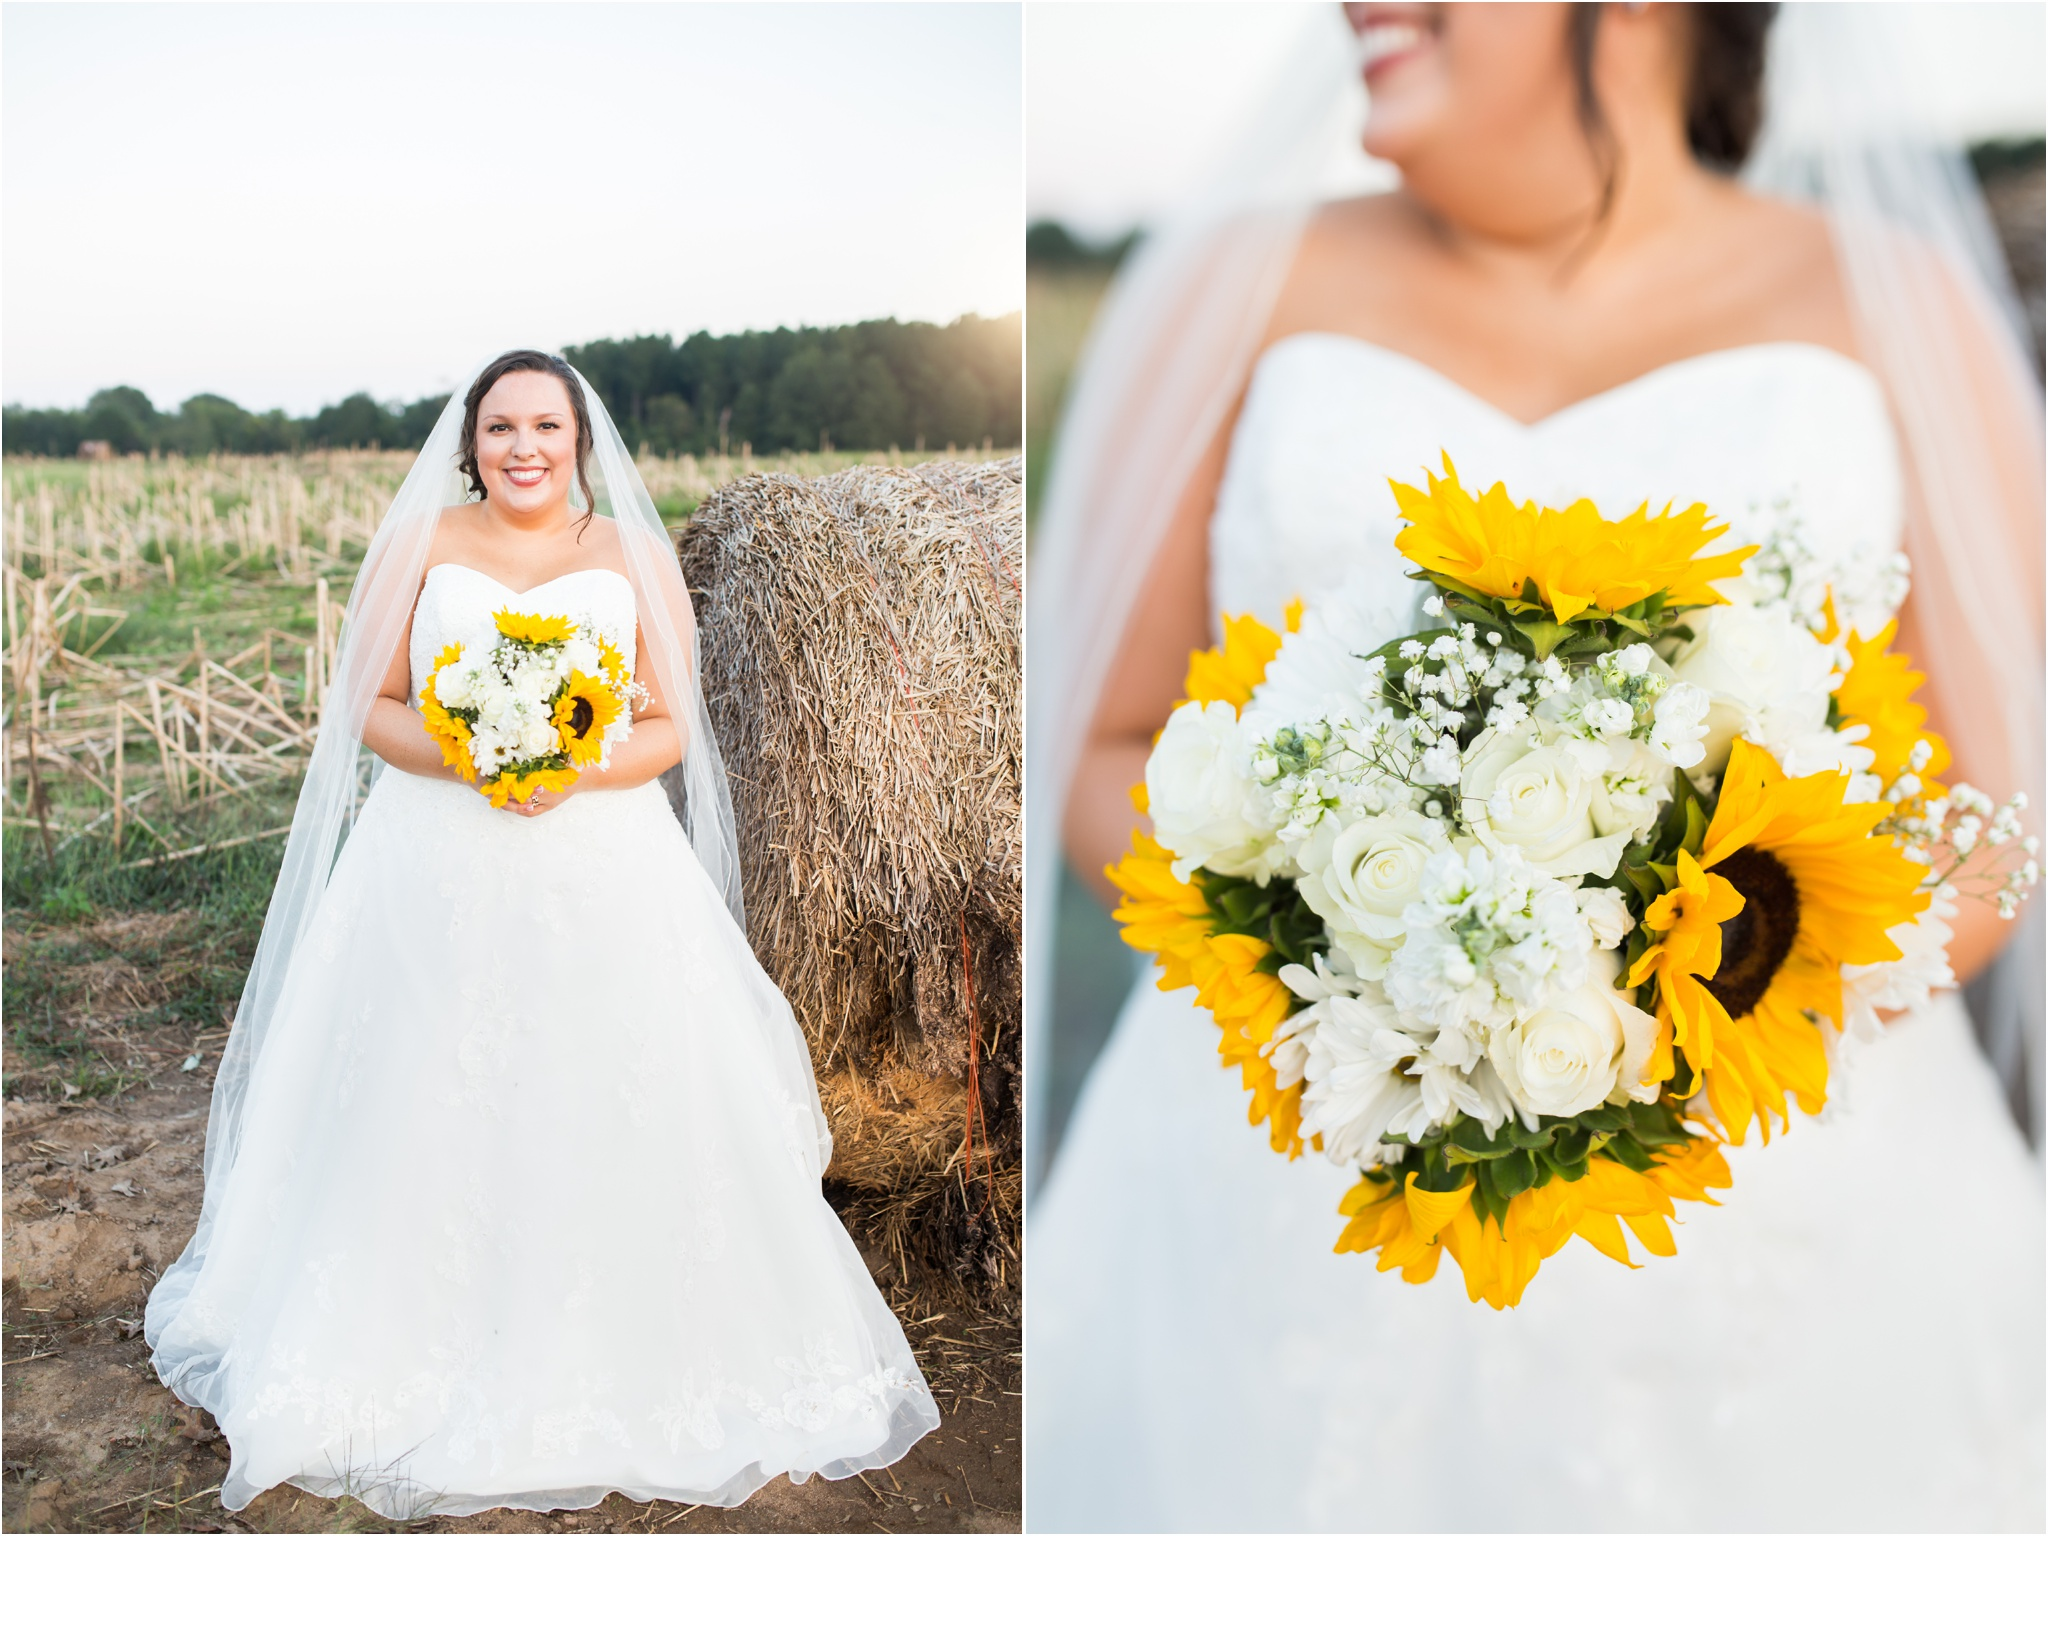 Rainey_Gregg_Photography_St._Simons_Island_Georgia_California_Wedding_Portrait_Photography_0341.jpg